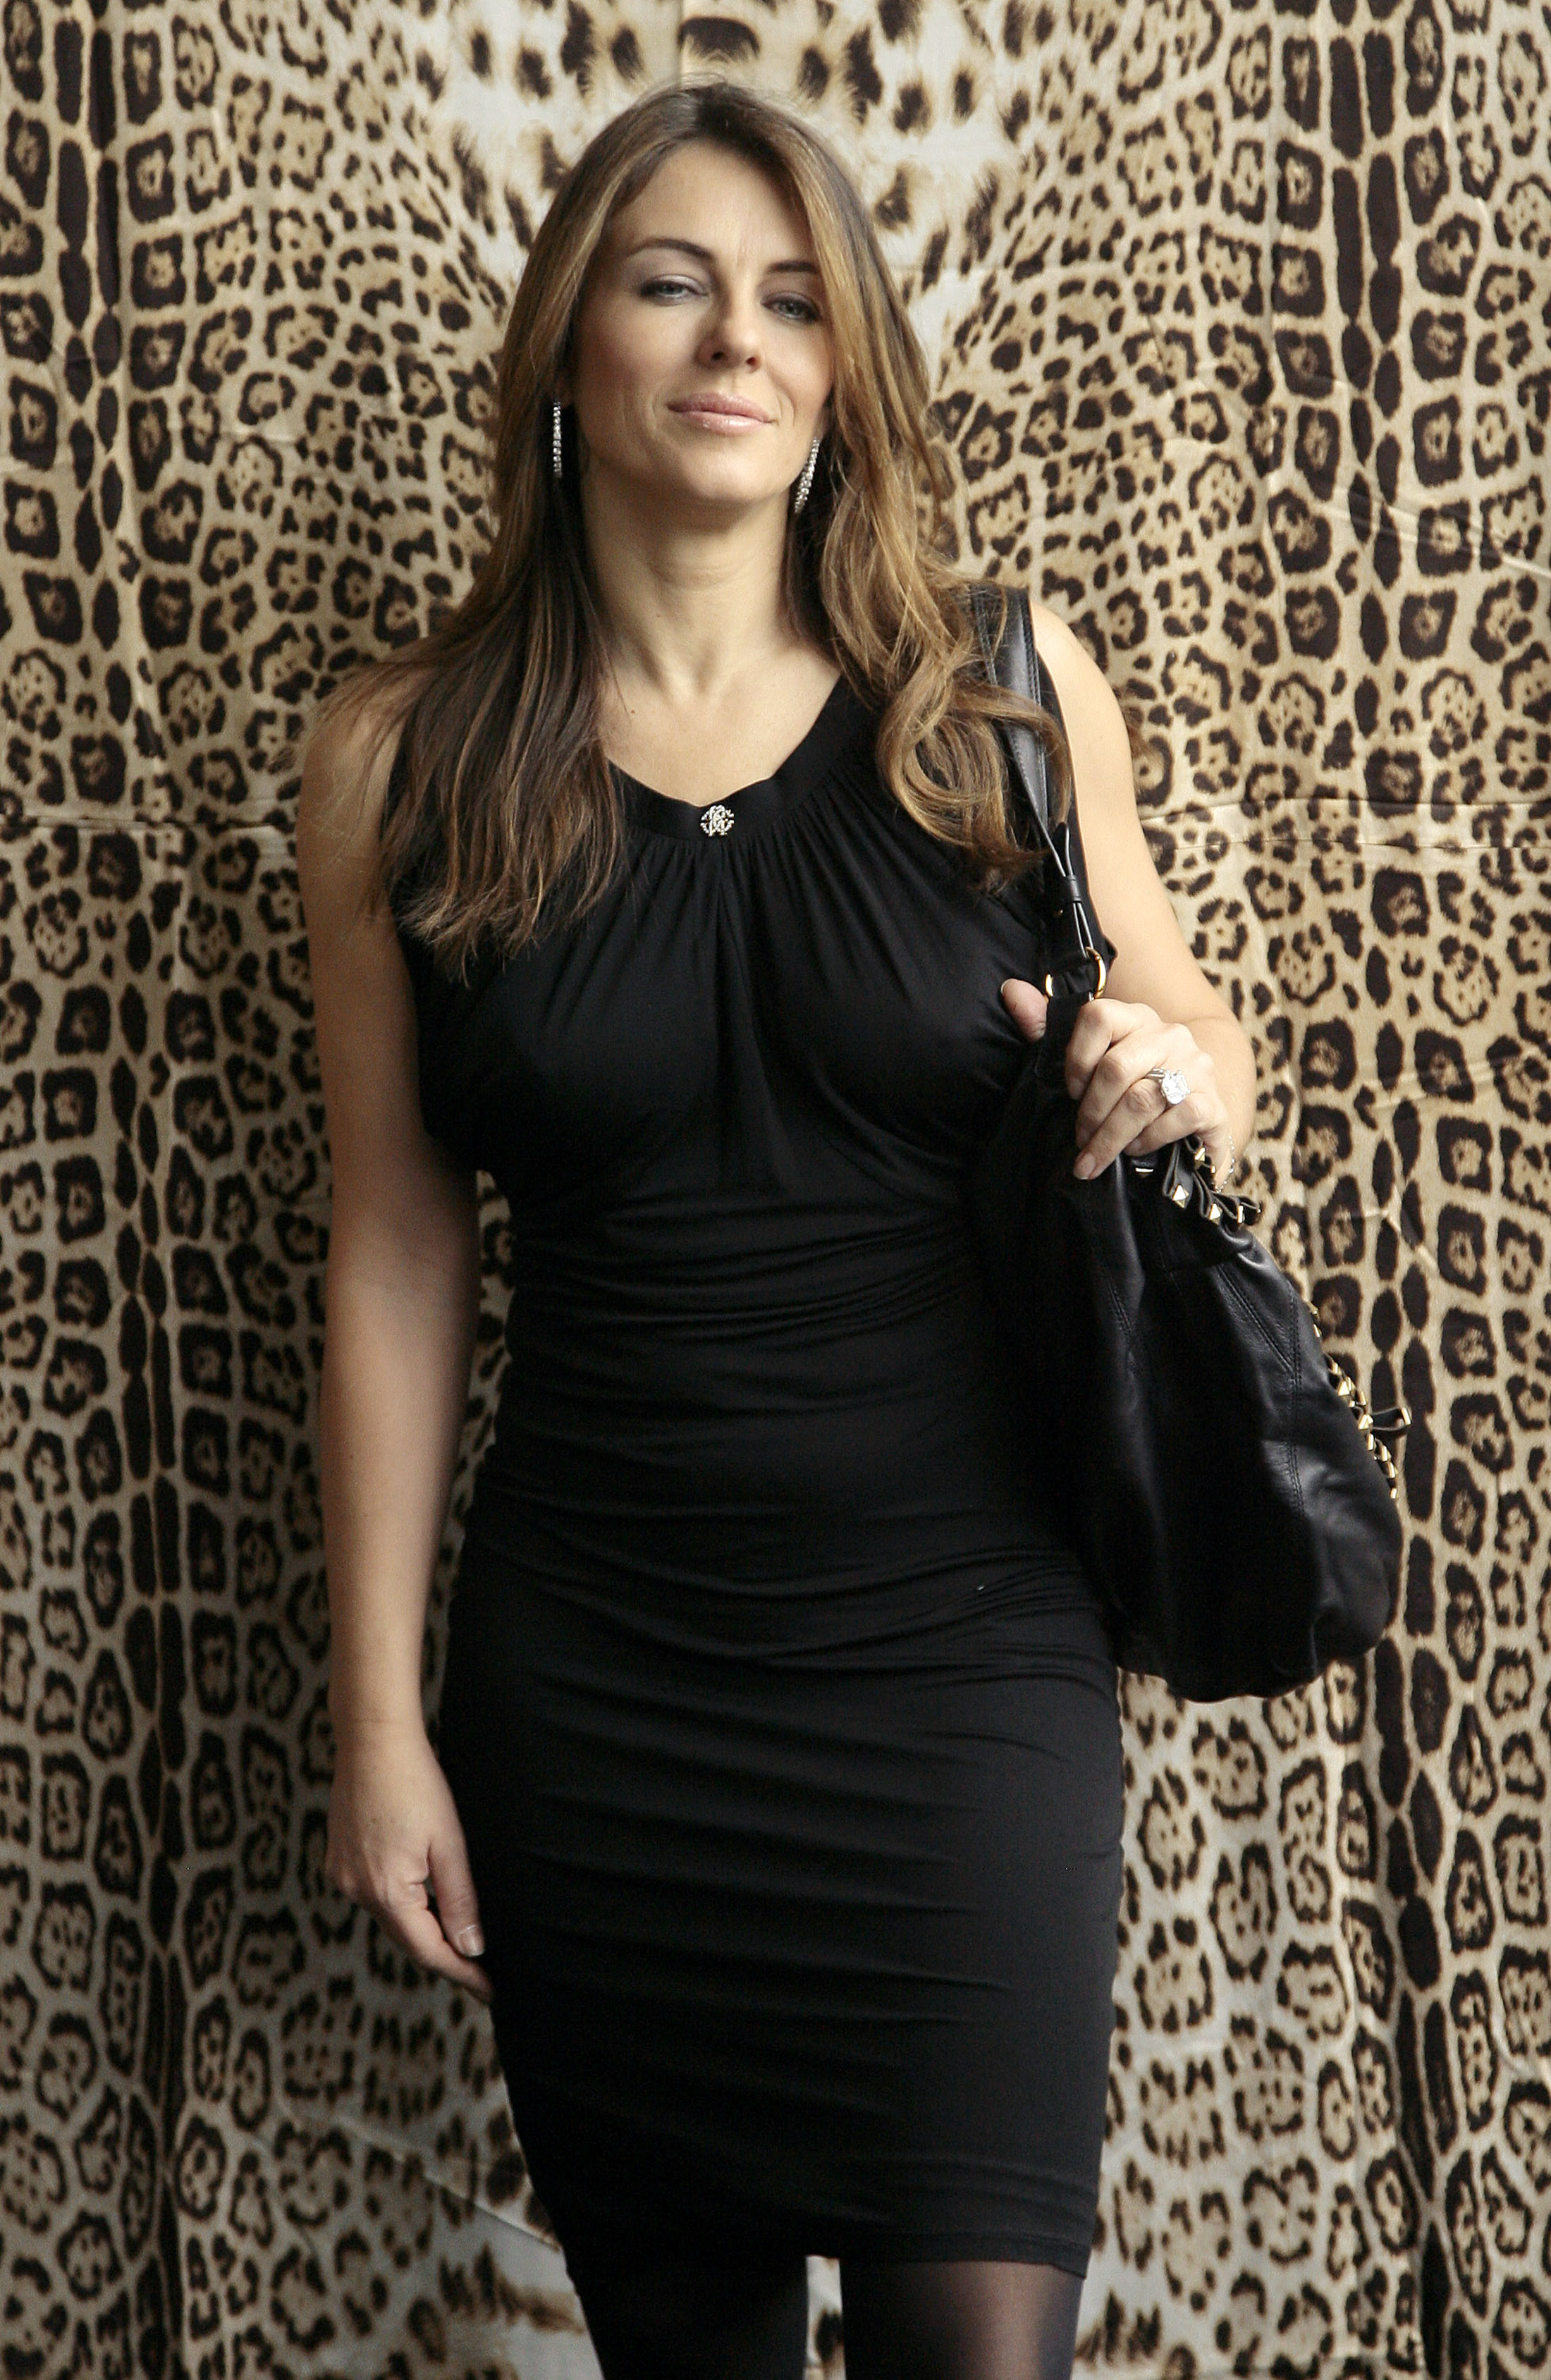 British model Elizabeth Hurley poses for photographers as she arrives to attend the Roberto Cavalli Fall/Winter 2009/10 women's collection during Milan Fashion Week March 1, 2009 REUTERS/Alessandro Garofalo  (ITALY)